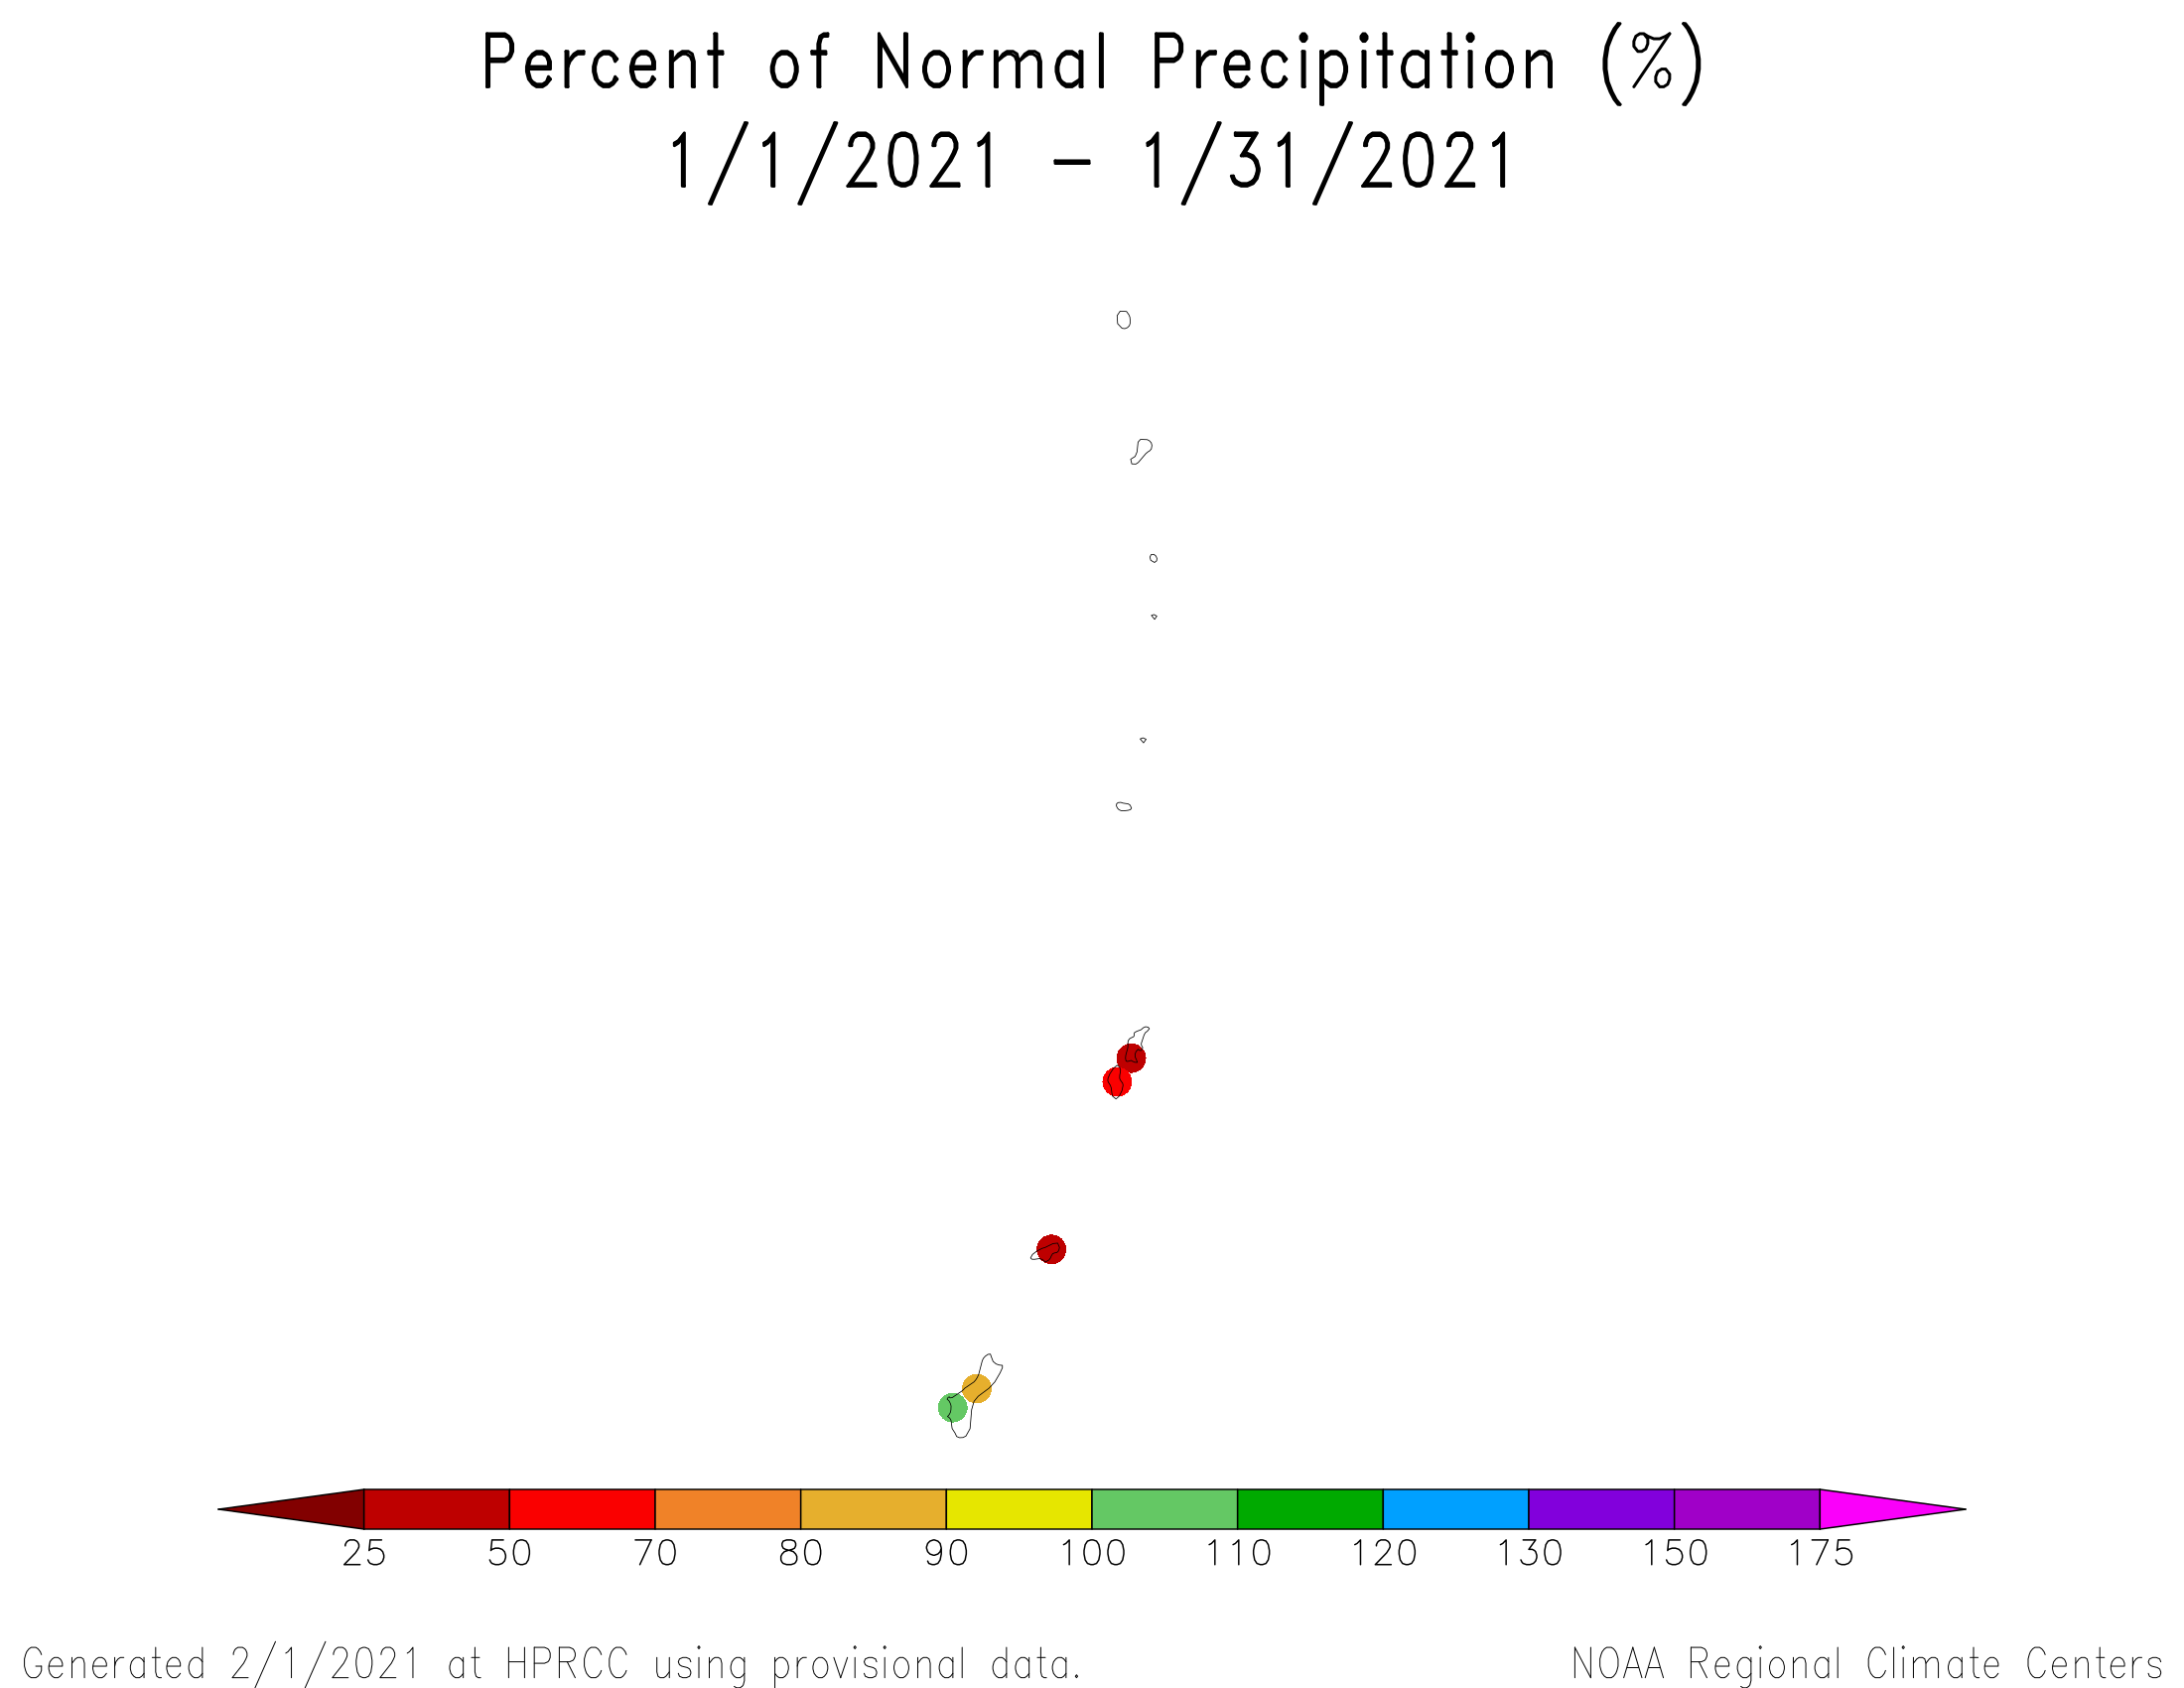 1-month Percent of Normal Precipitation for the Marianas